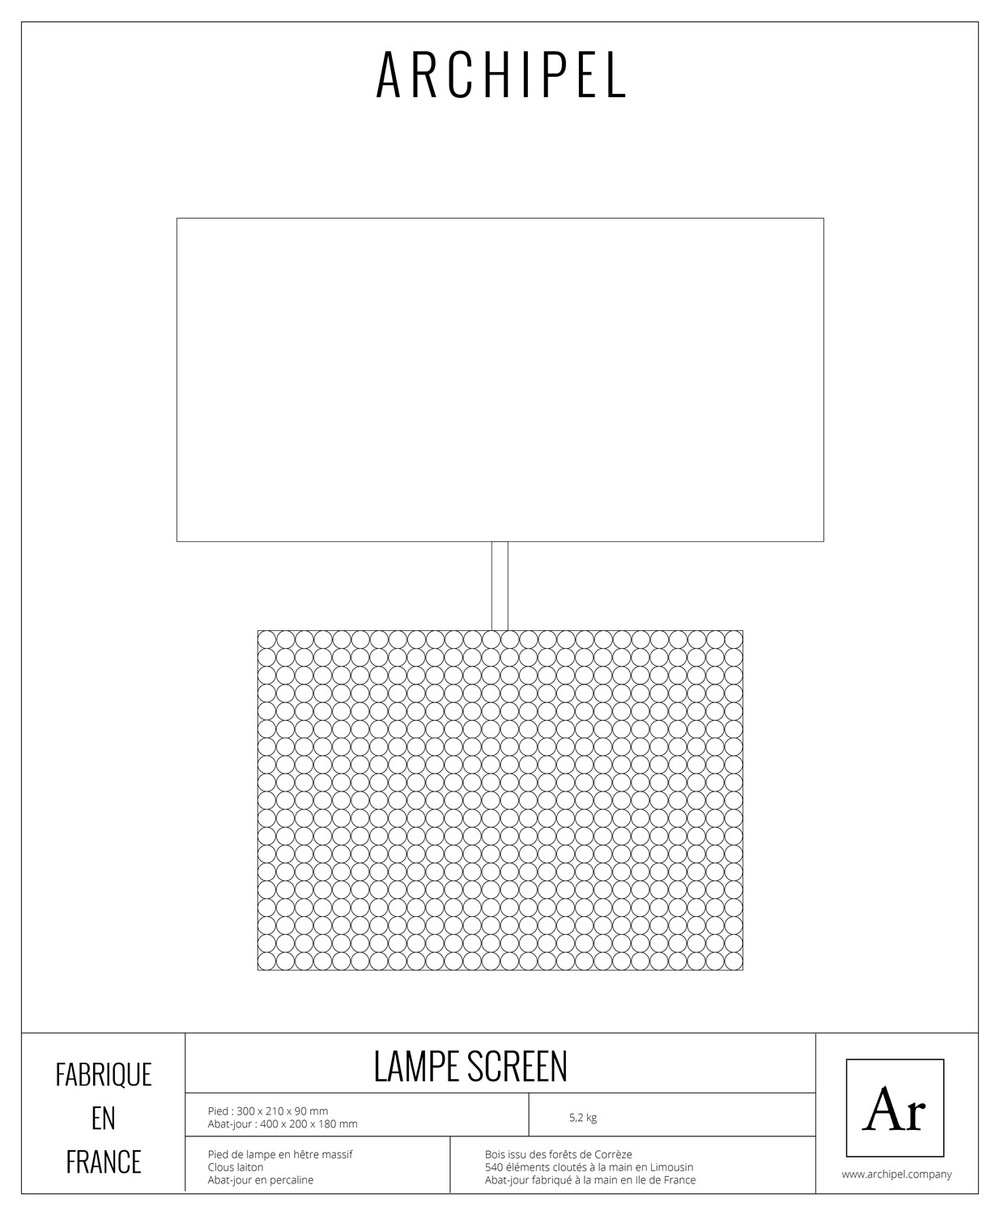 archipel-luminaire-lampe screen.jpg